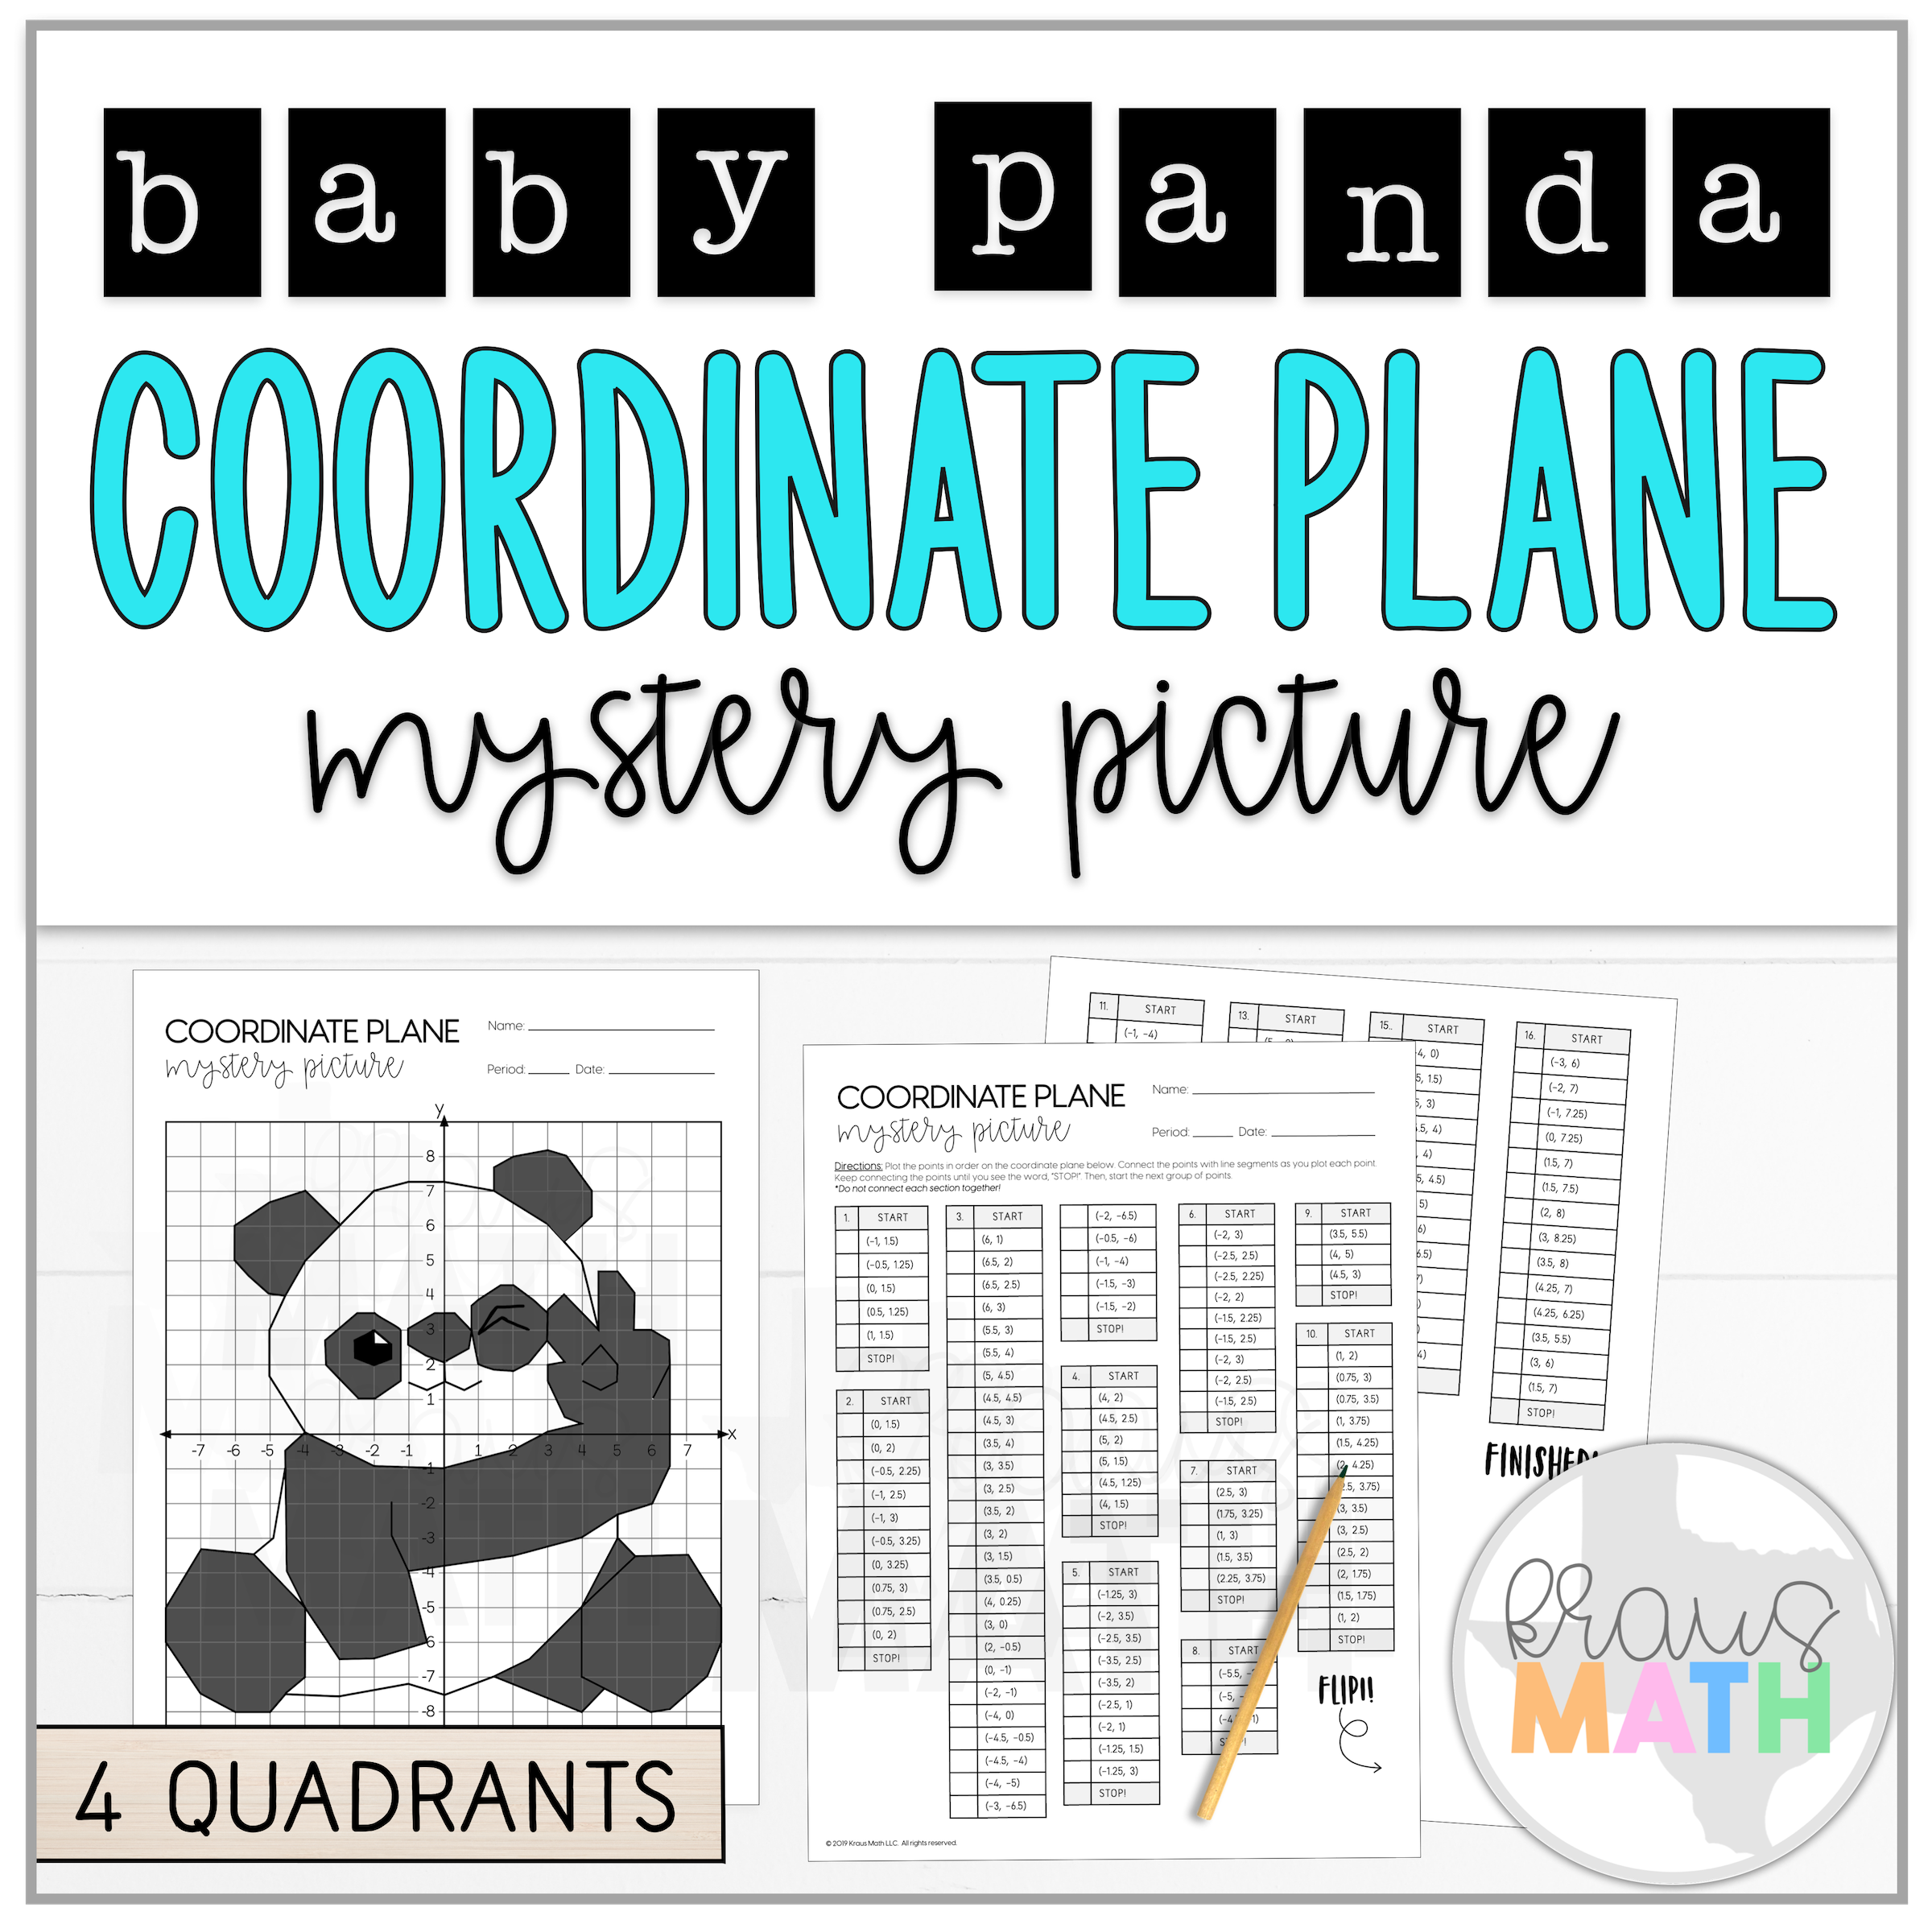 Cute Baby Panda Coordinate Plane Mystery Picture 4